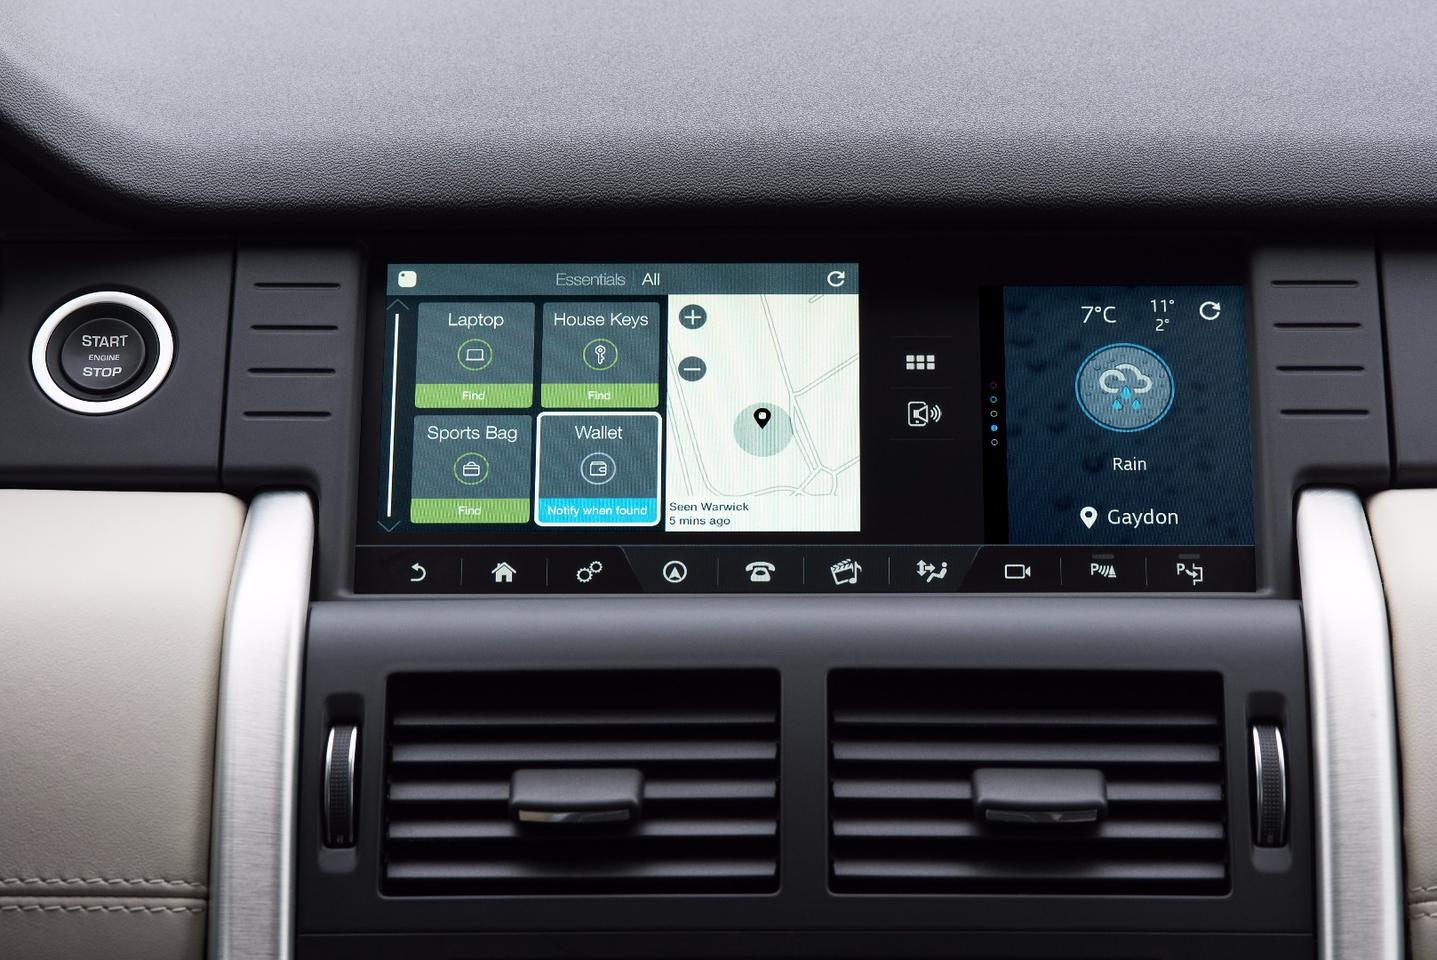 Land Rover has teamed with Tile to create a system that tracks your items from within the car